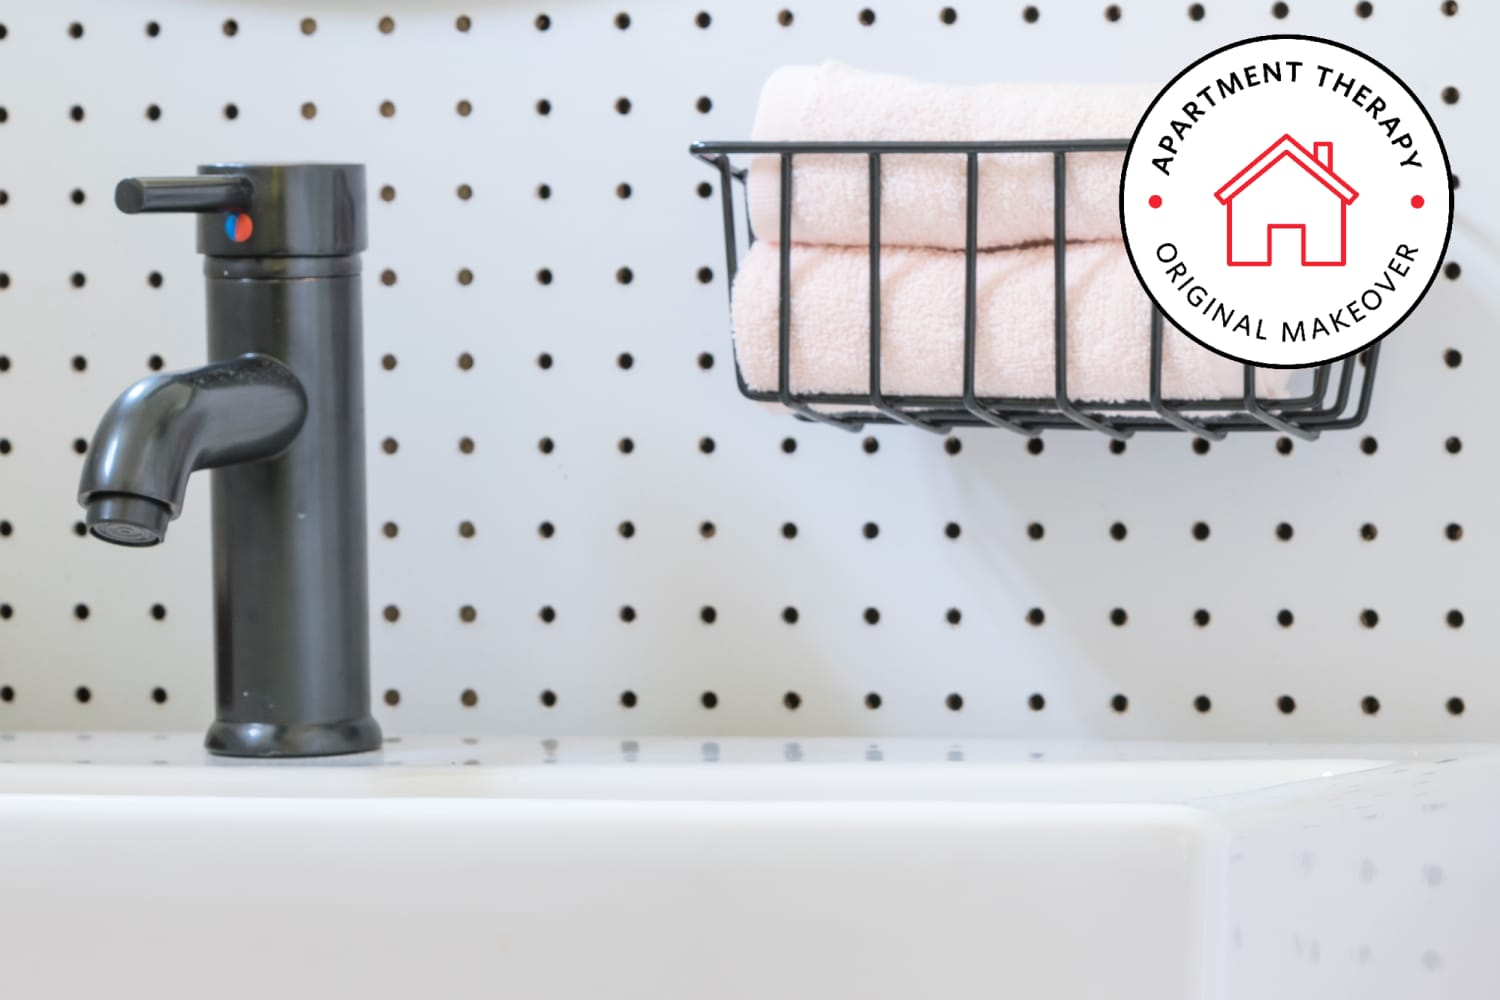 IKEA Sink Plumbing: What To Know About Installation